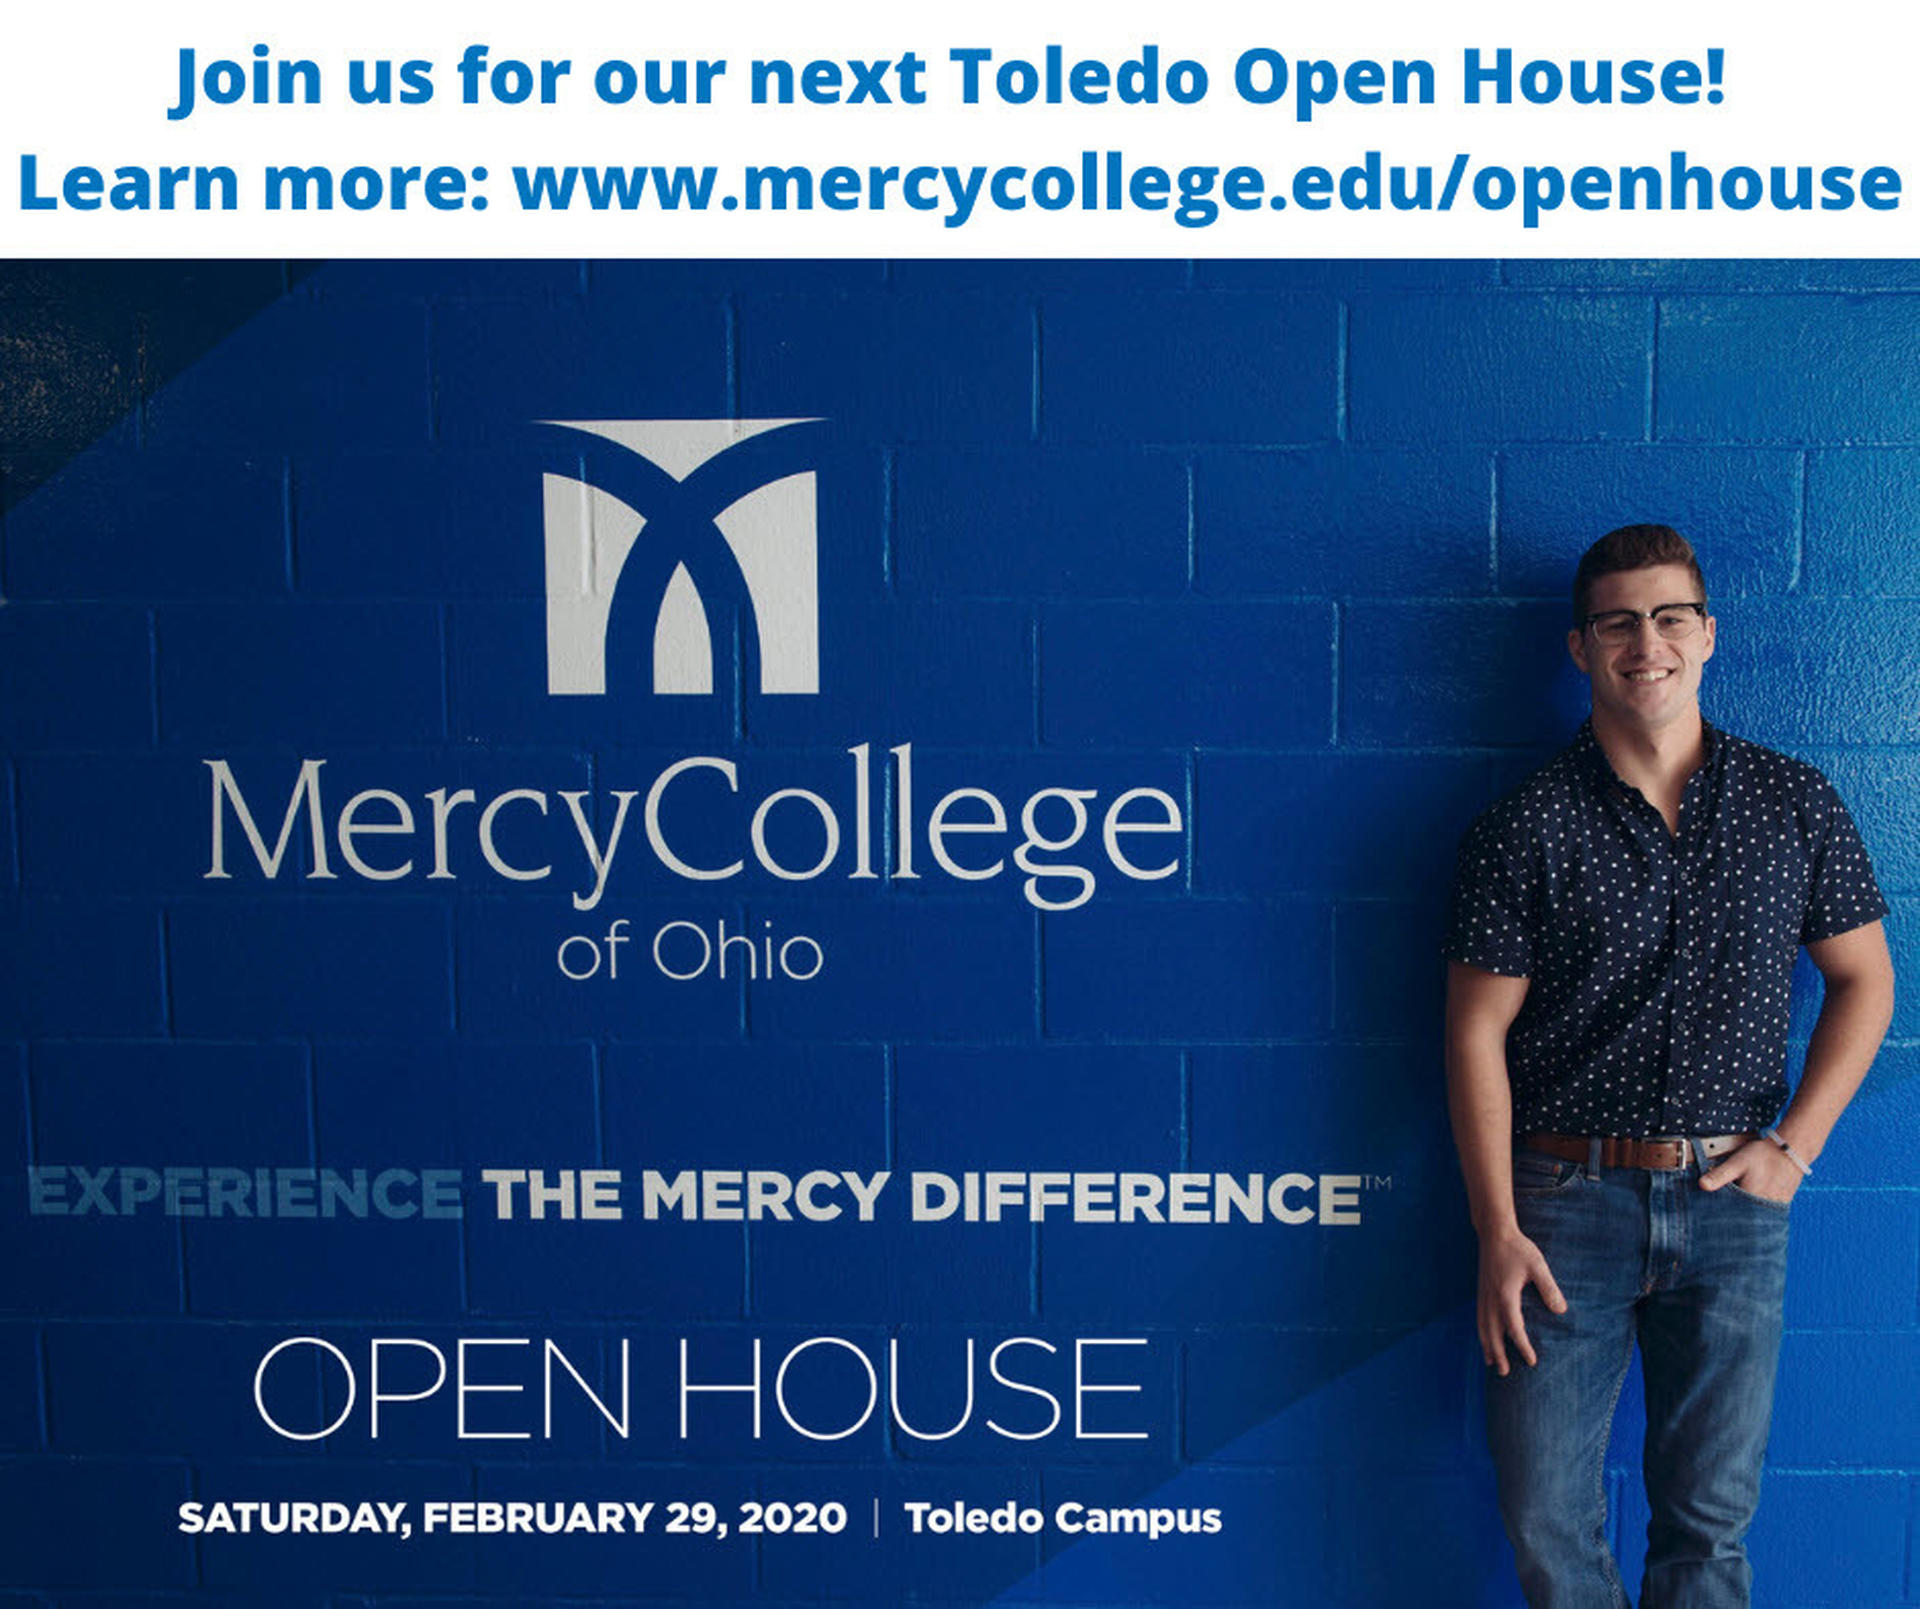 Toledo Open House Feb 2020 Facebook